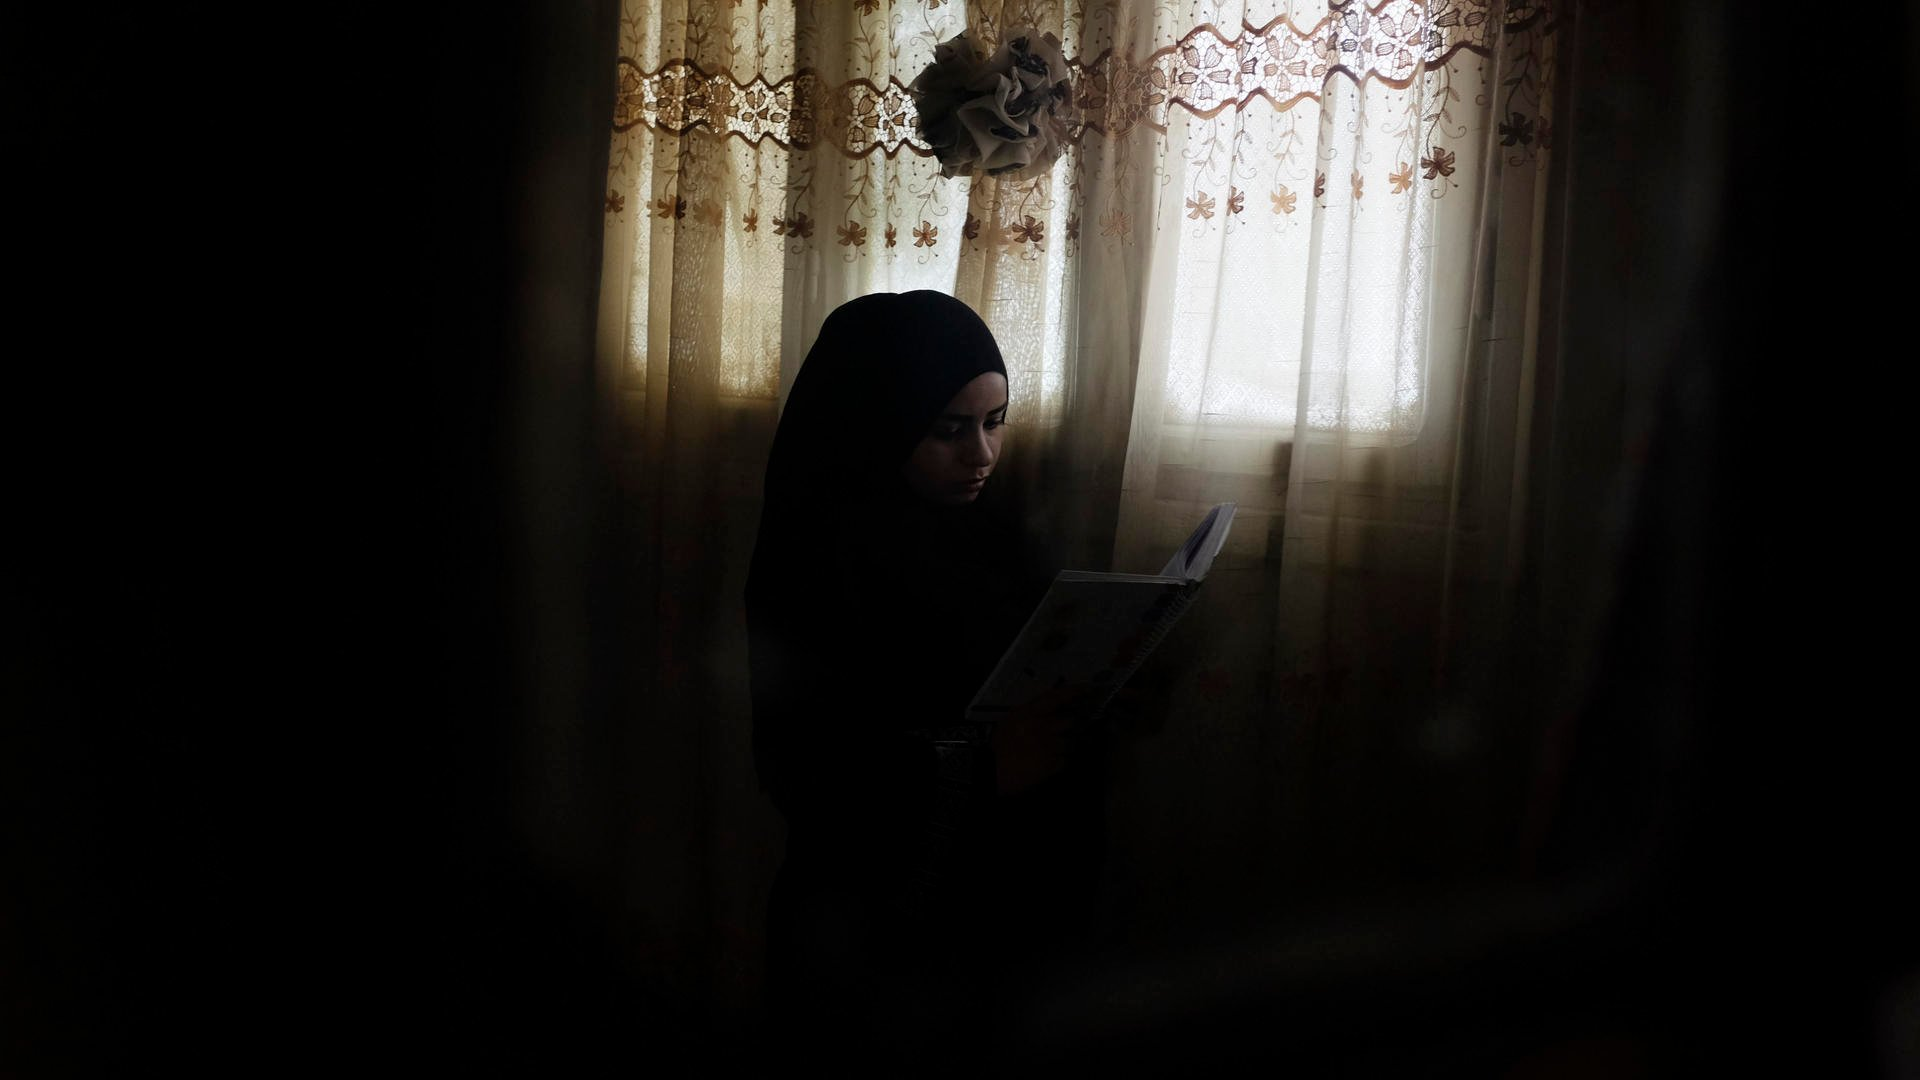 Rawan sits by a window, reading